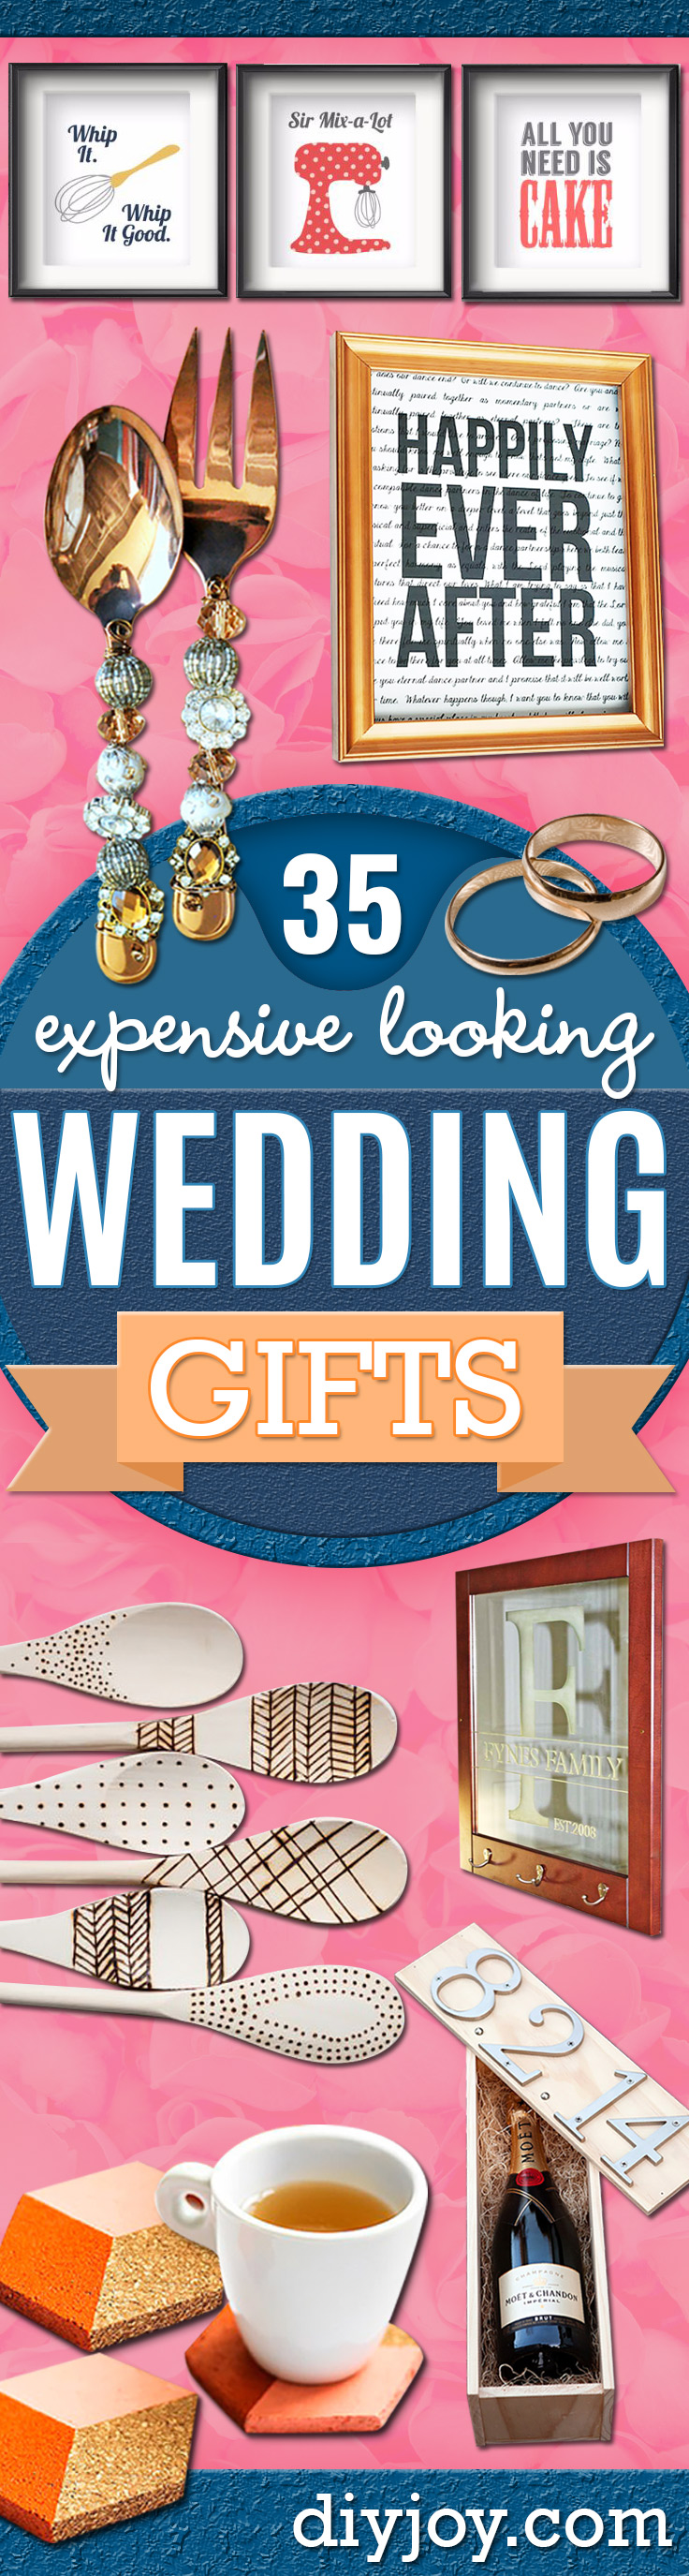 Cheap DIY Wedding Gift Ideas - Inexpensive Gifts for Weddings and Handmade Gift Ideas for Couples - Easy and Unique Homemade Gift Ideas to Make for Bride and Groom - Cheap Presents You Can Make for the Couple- for the Home, From The Kids, Personalized Ideas for Parents and Bridesmaids